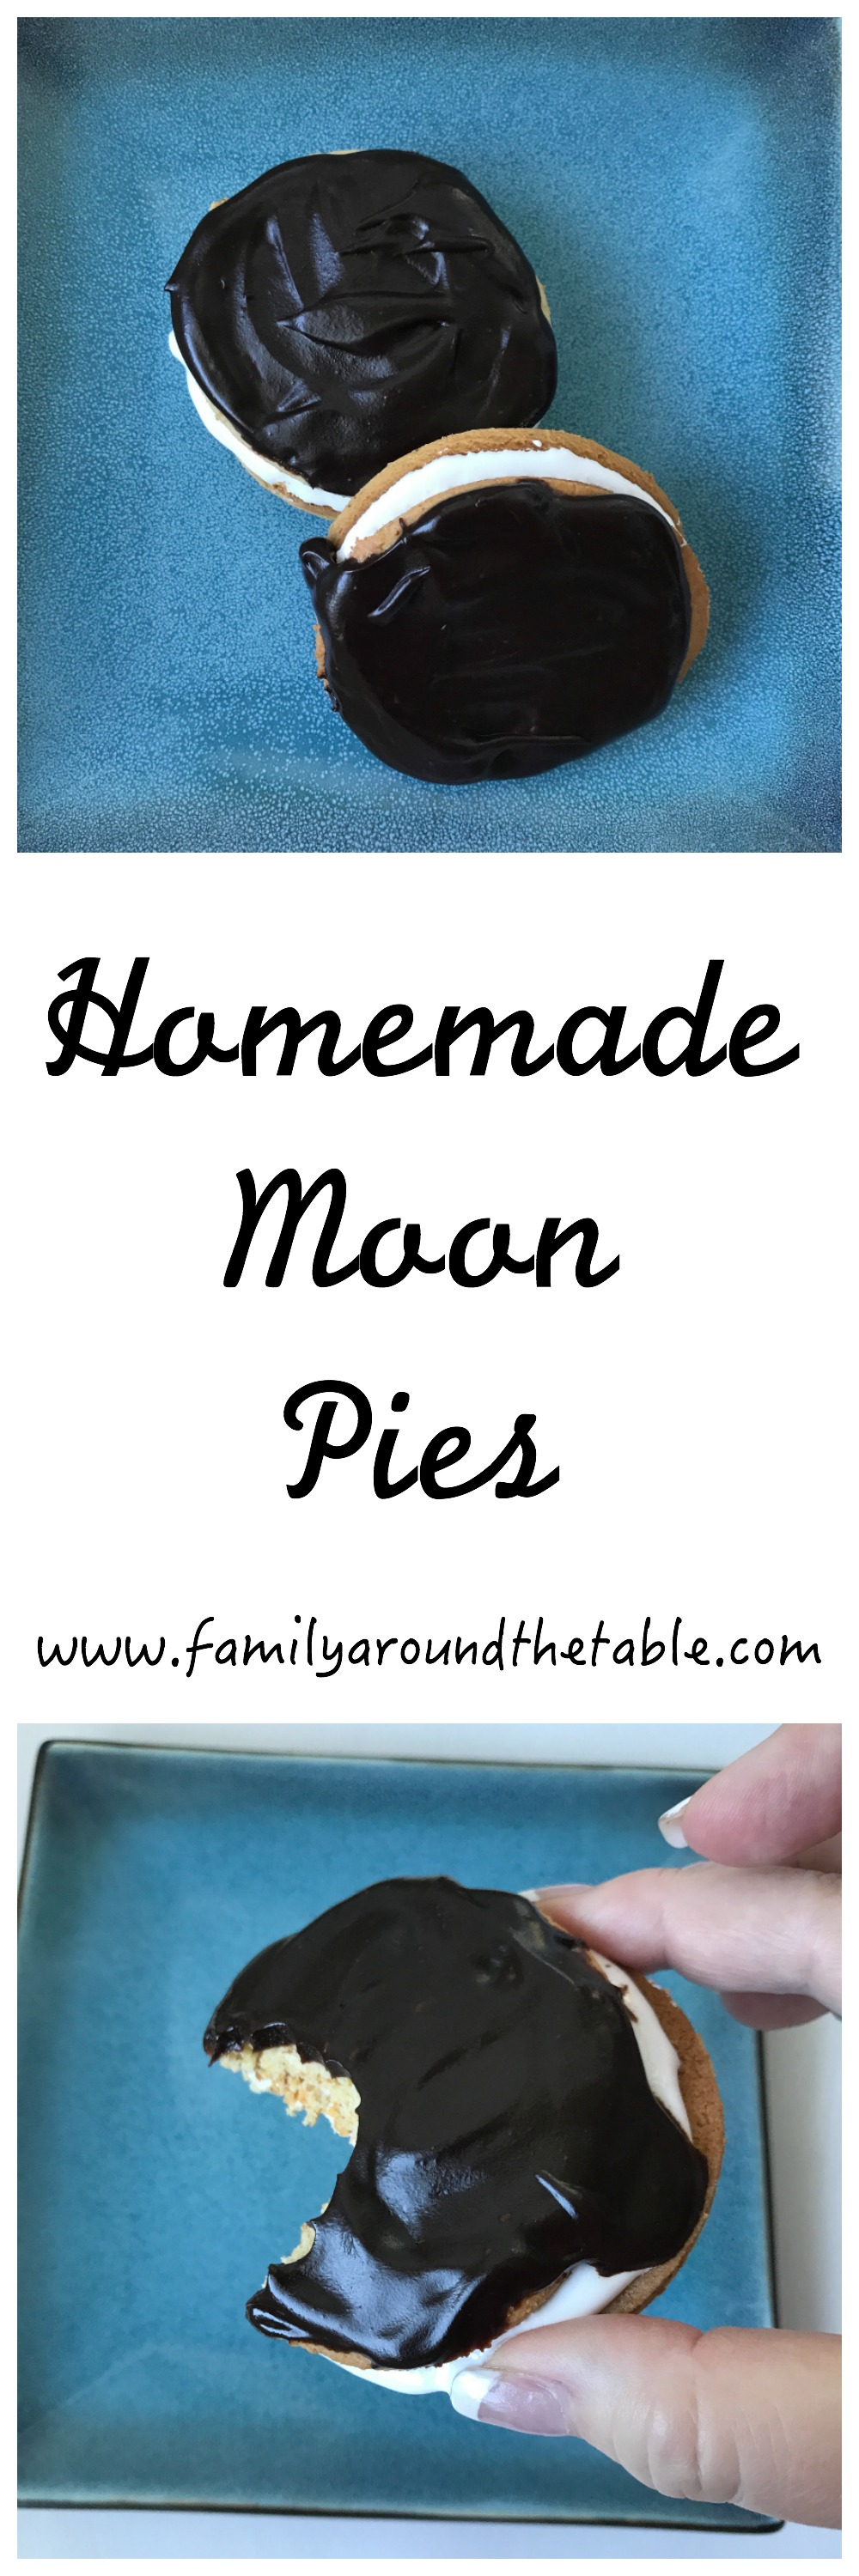 Homemade moon pies are a fun dessert for the total solar eclipse.